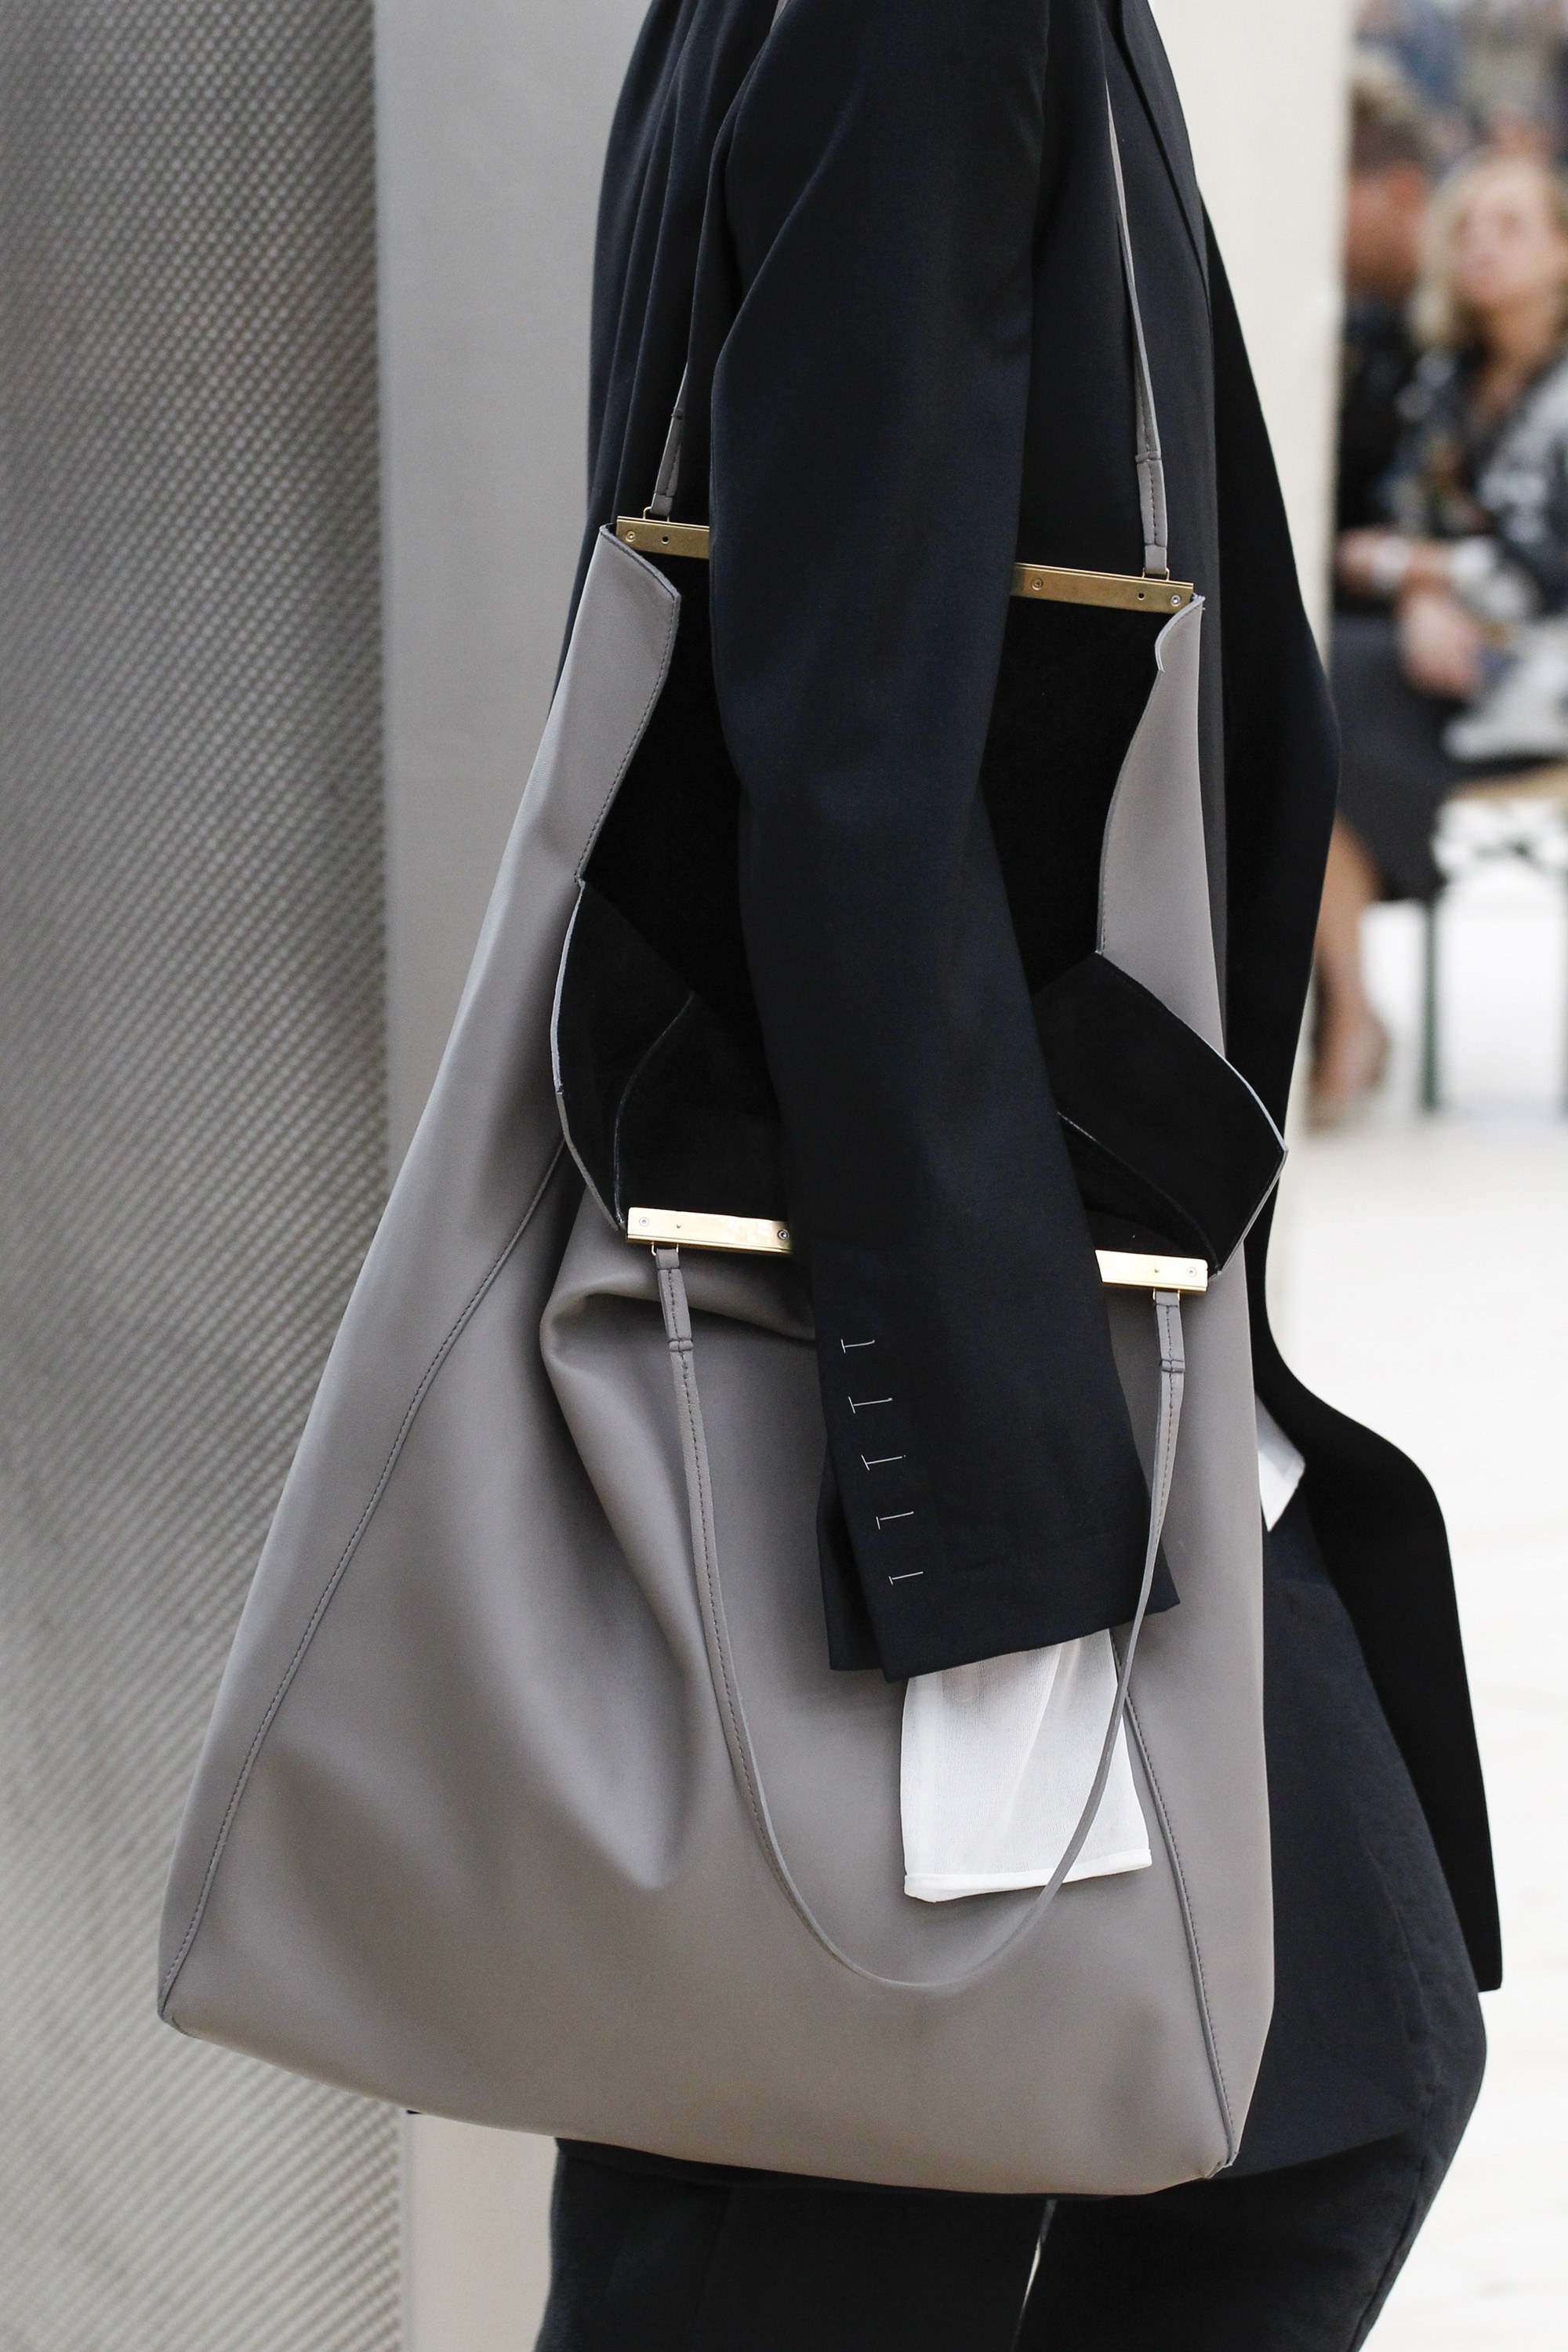 celine bag gray nihy  celine bag gray